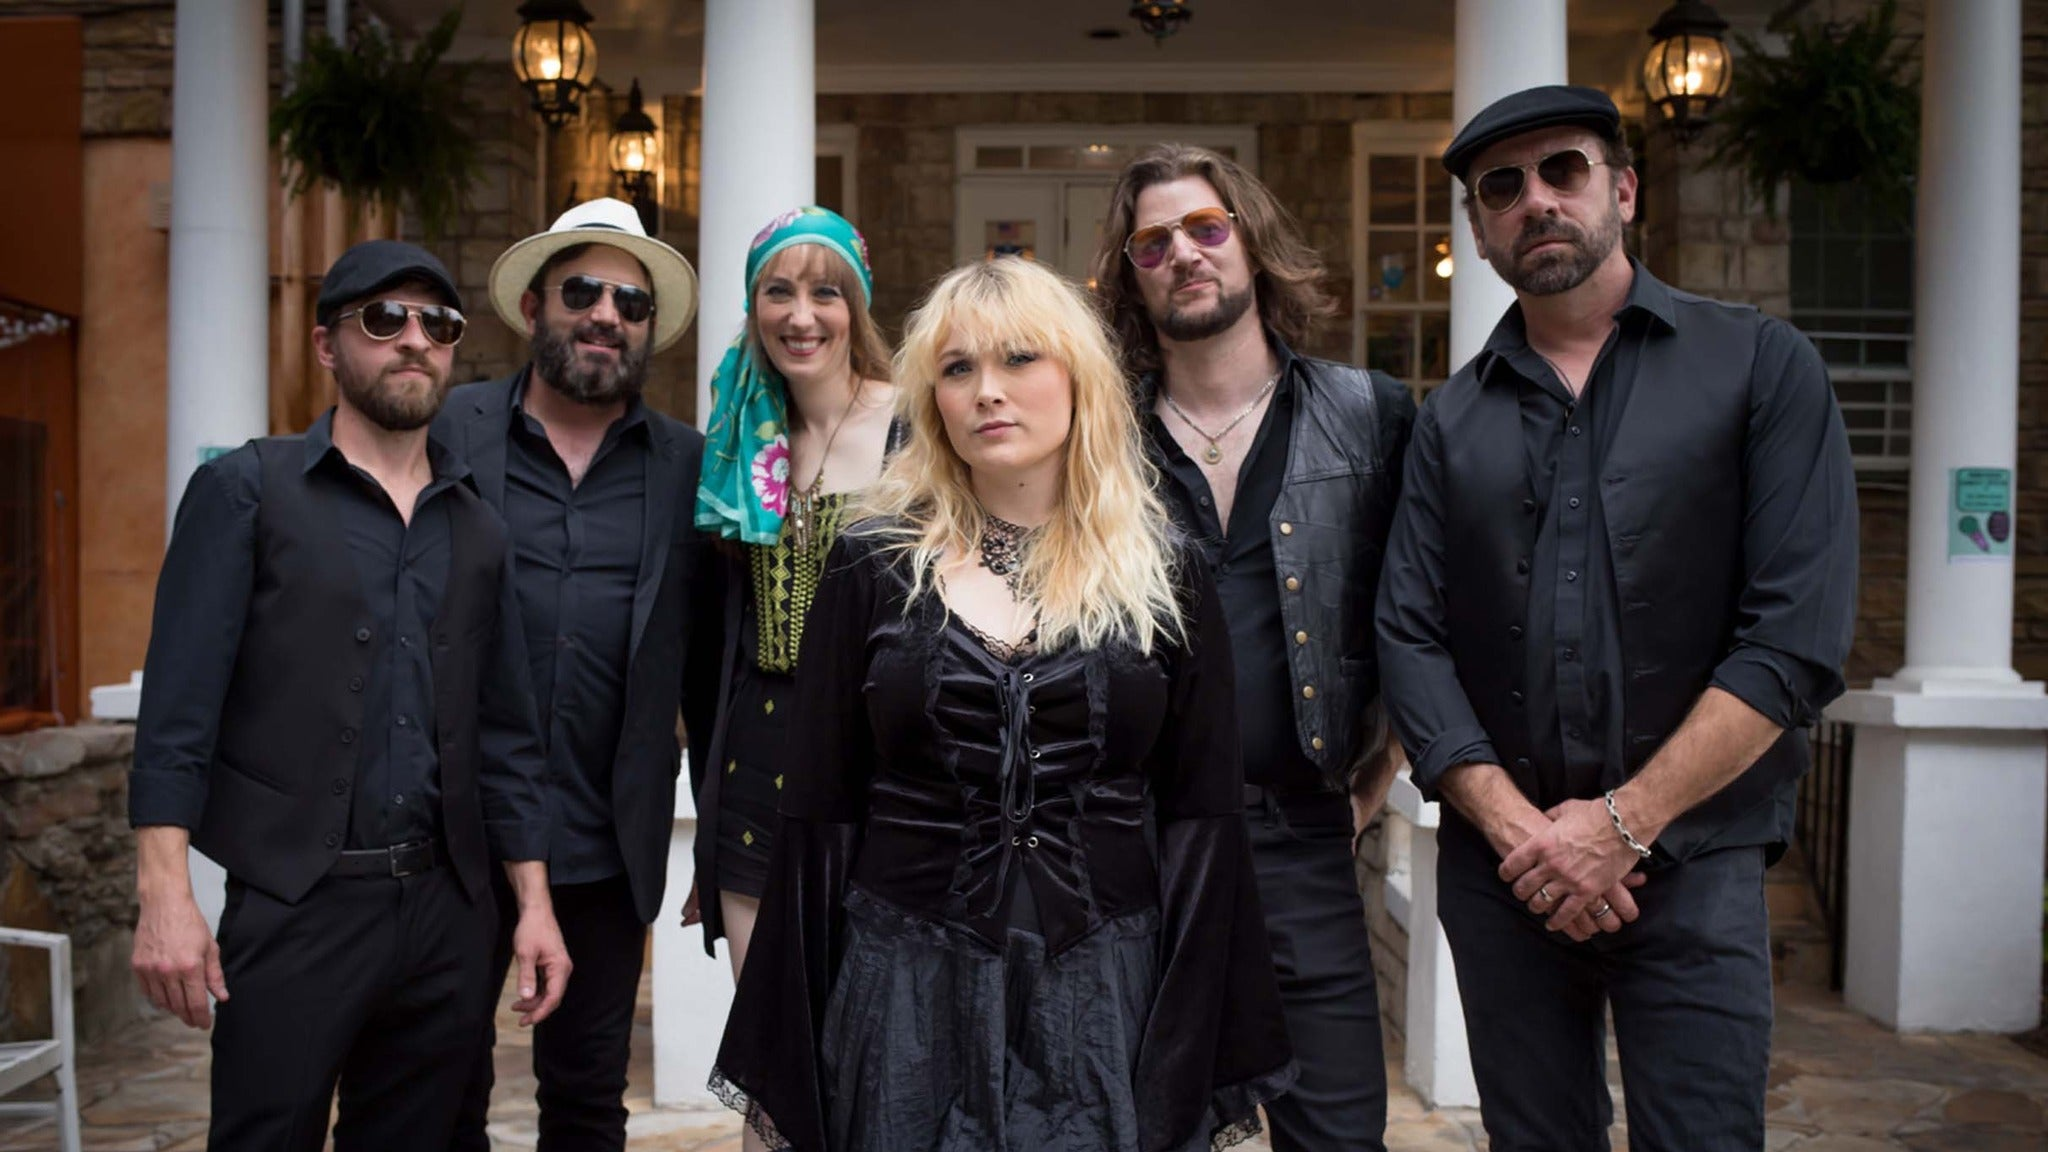 Rumours - A Tribute to Fleetwood Mac